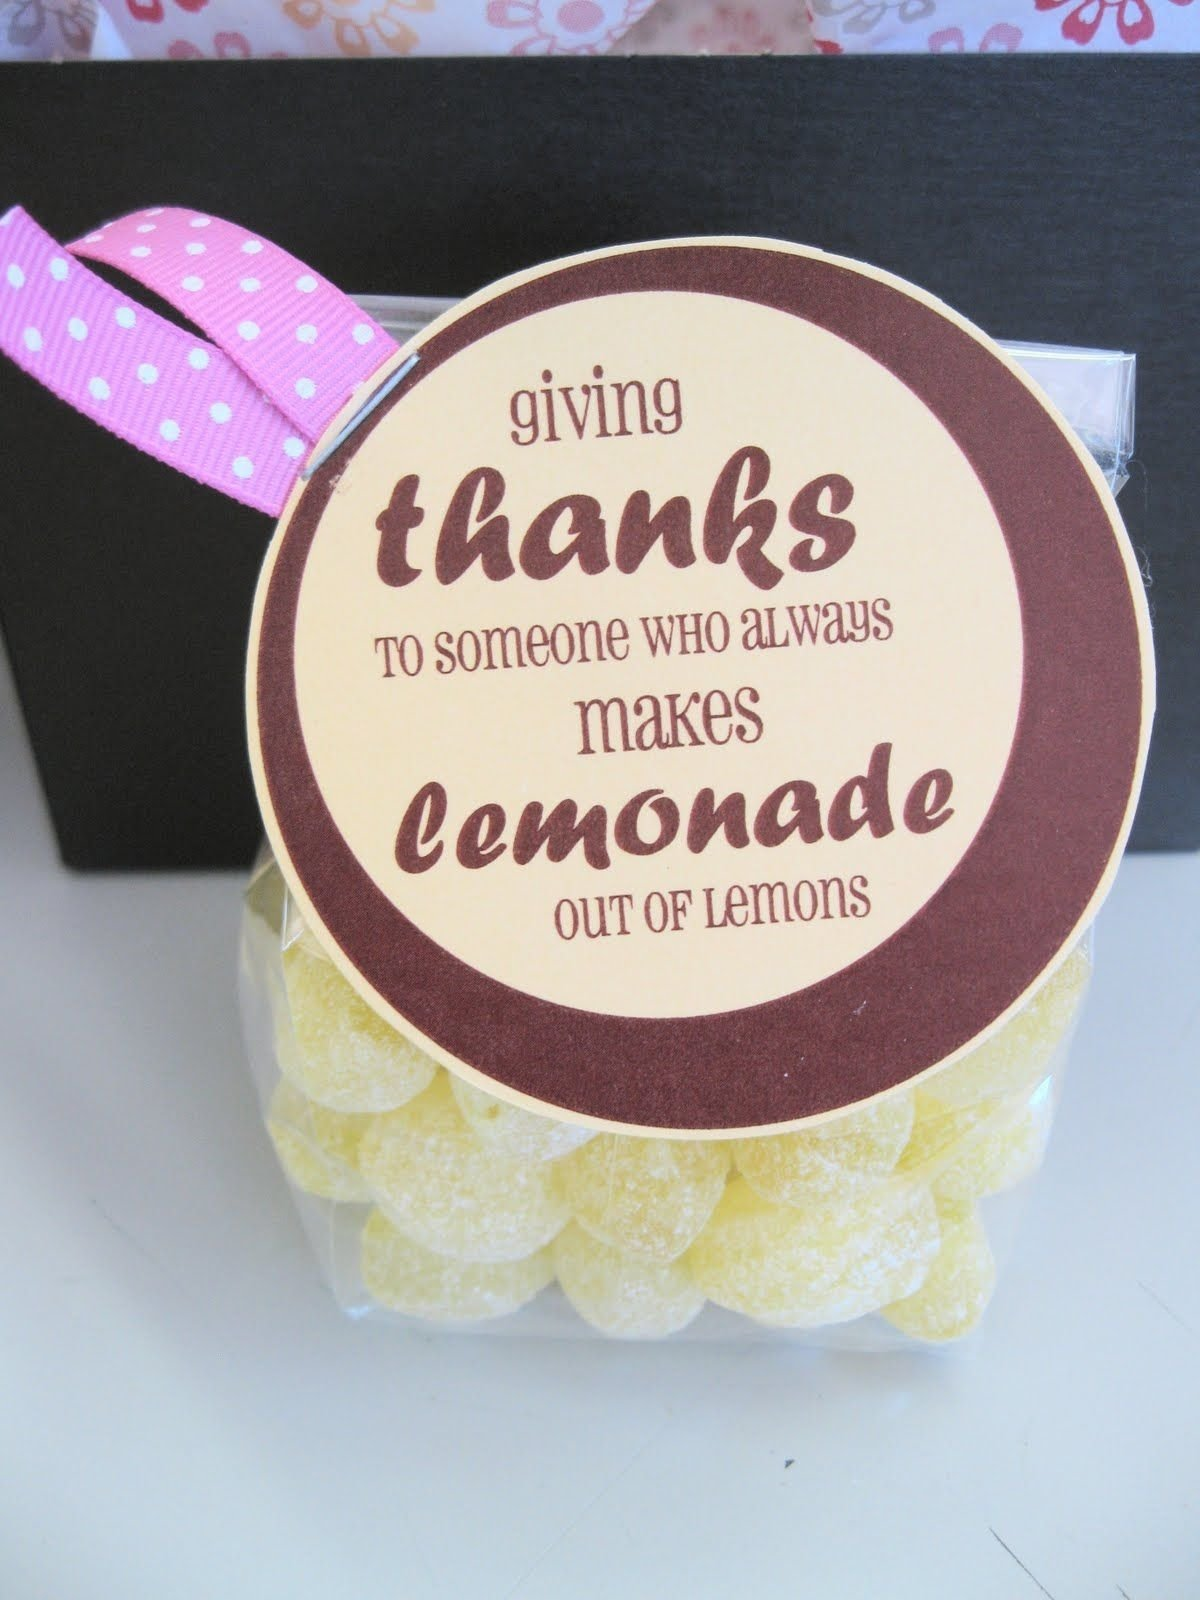 10 Perfect Small Thank You Gift Ideas pioneer party here she comes gift ideas pinterest 2021